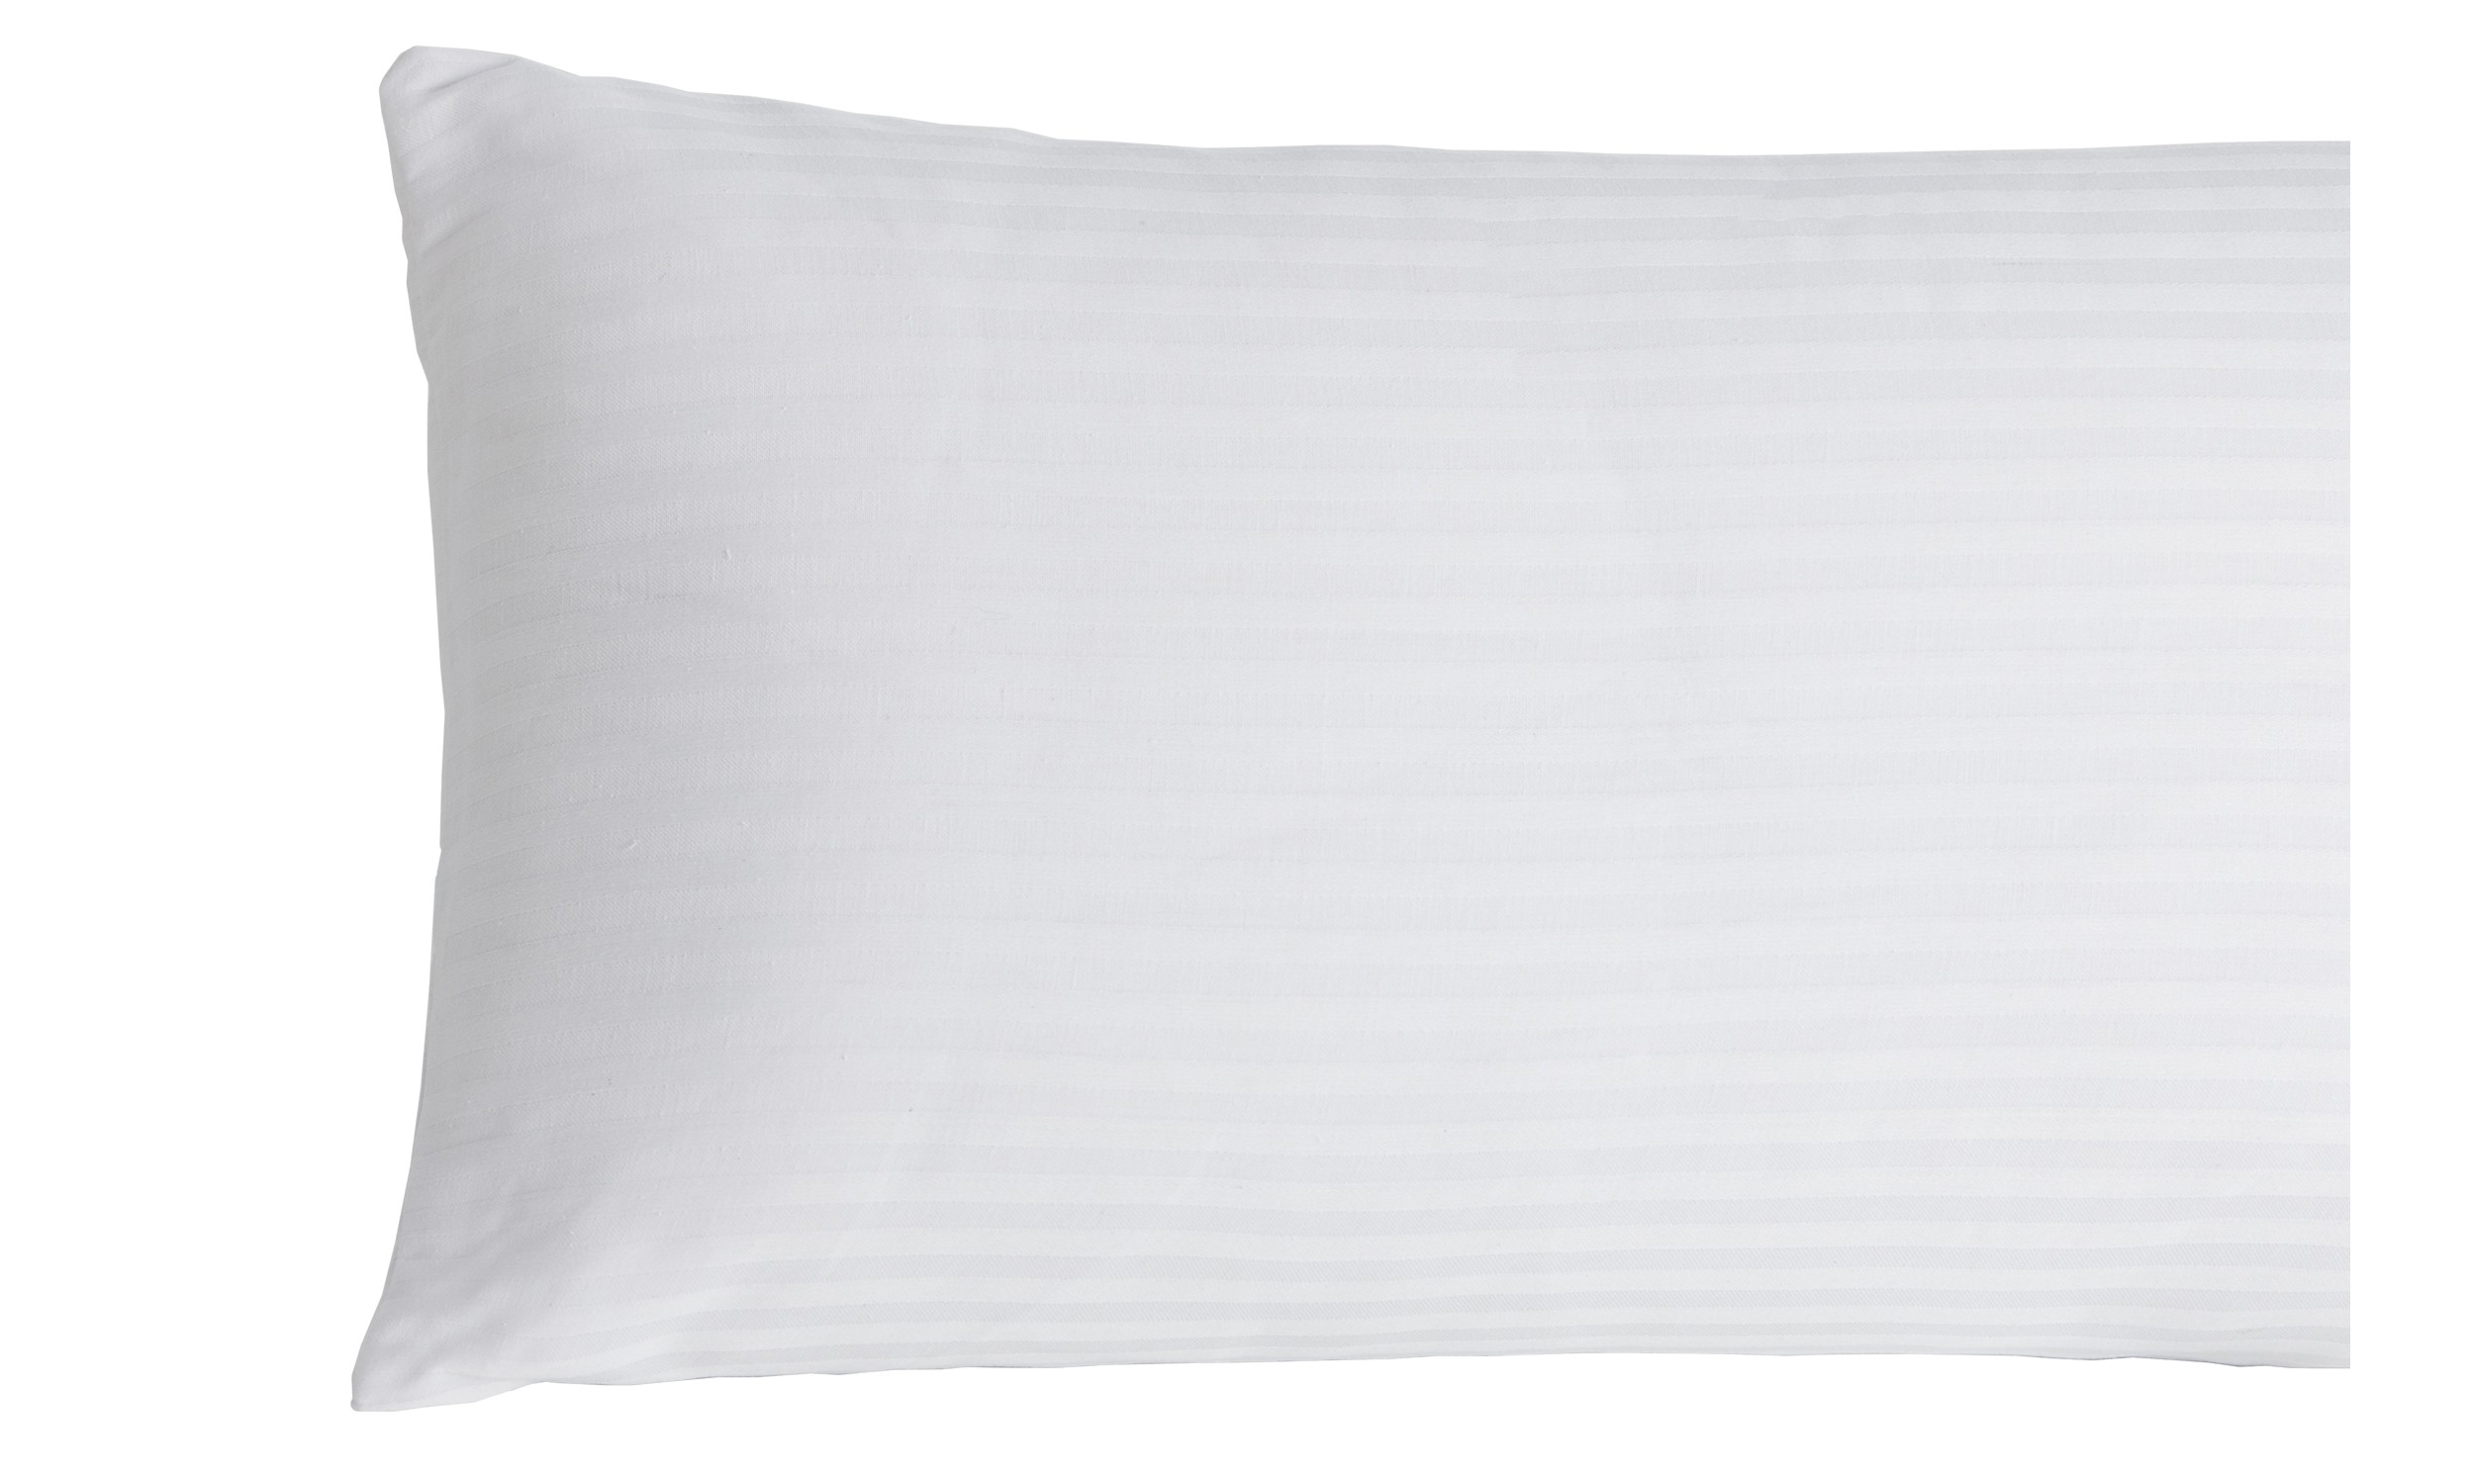 COTTON NATURE PILLOWCASE